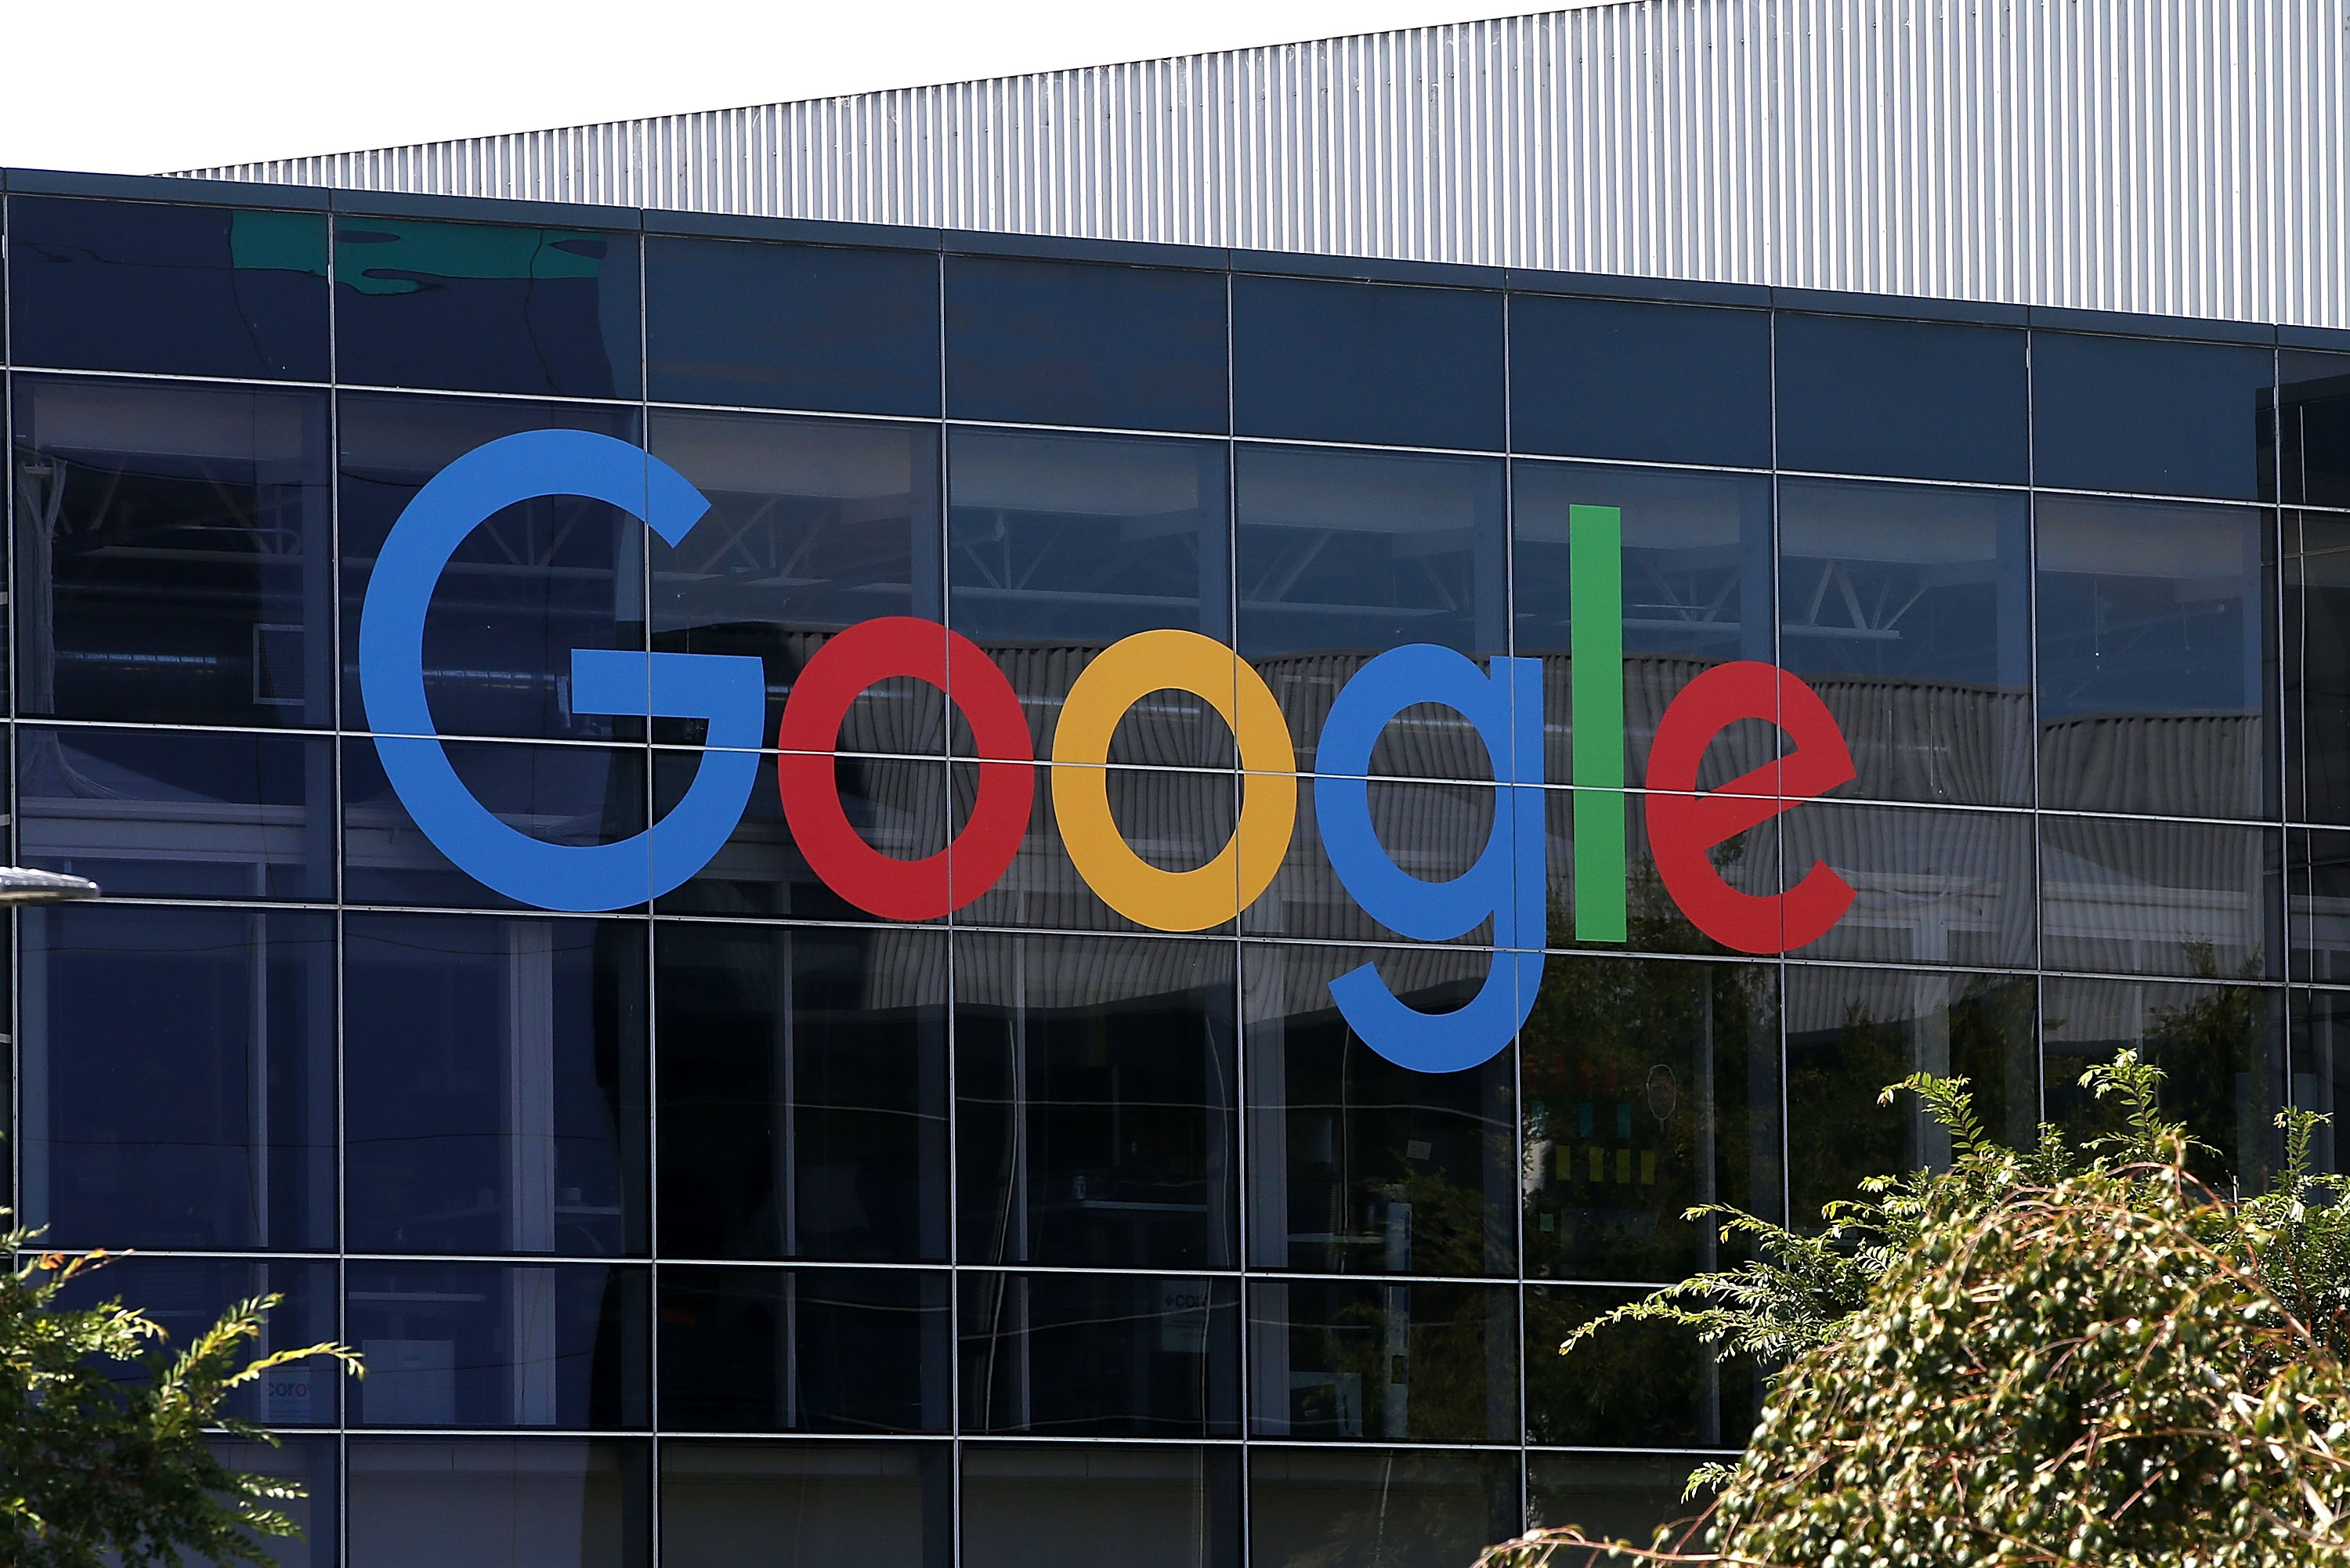 Google's giant new trans-Pacific internet cable goes online Thursday